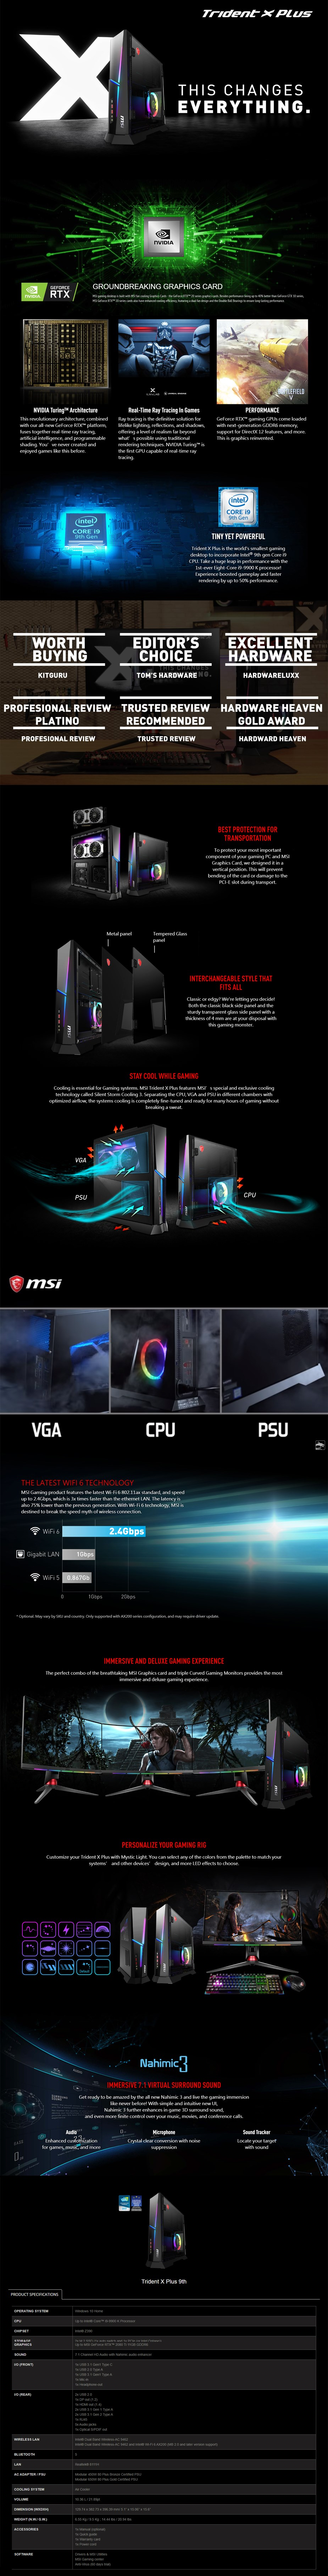 MSI TRIDENT X Plus Desktop PC i9-9900KF 32GB 2TB+1TGB RTX2080SUPER Win10H - Overview 1